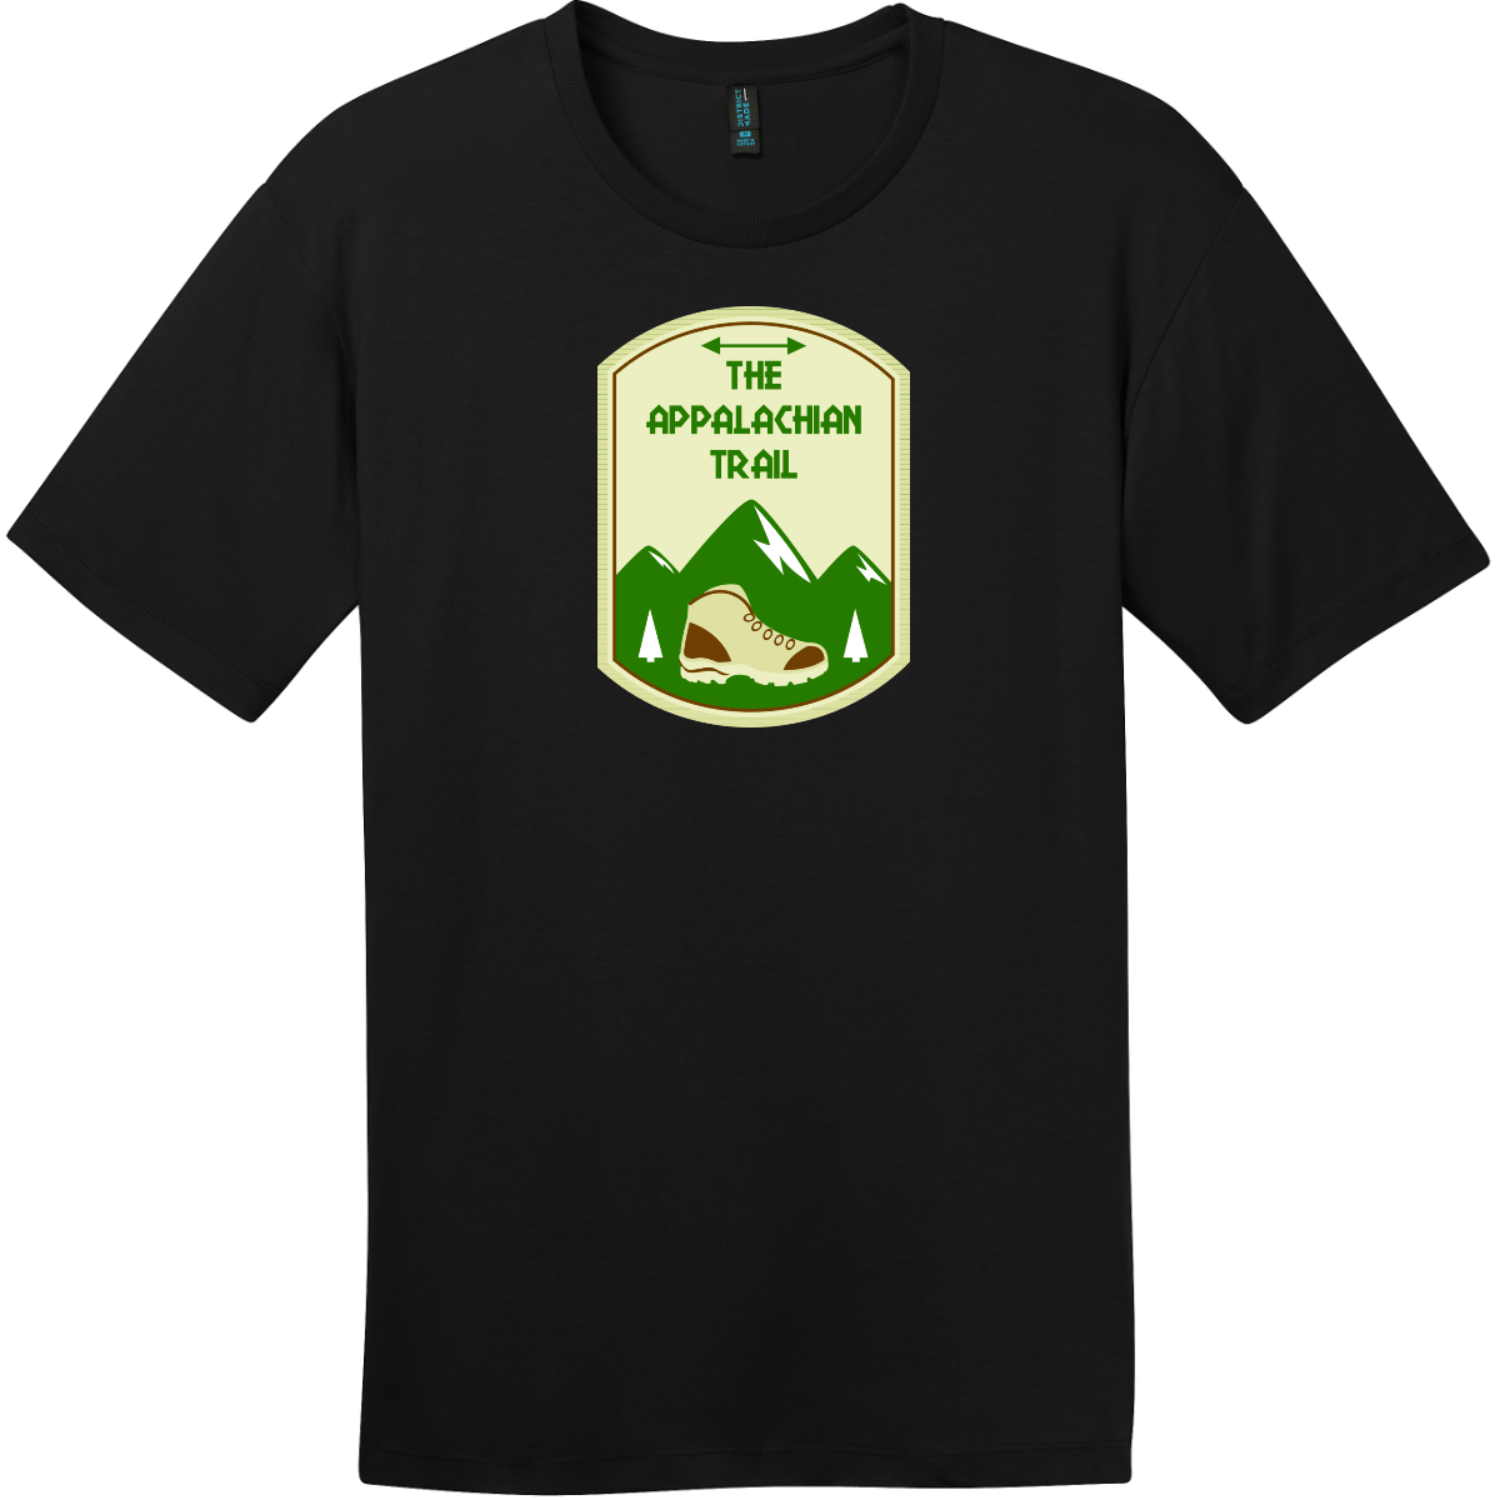 Appalachian Trail Mountain T-Shirt Jet Black District Perfect Weight Tee DT104